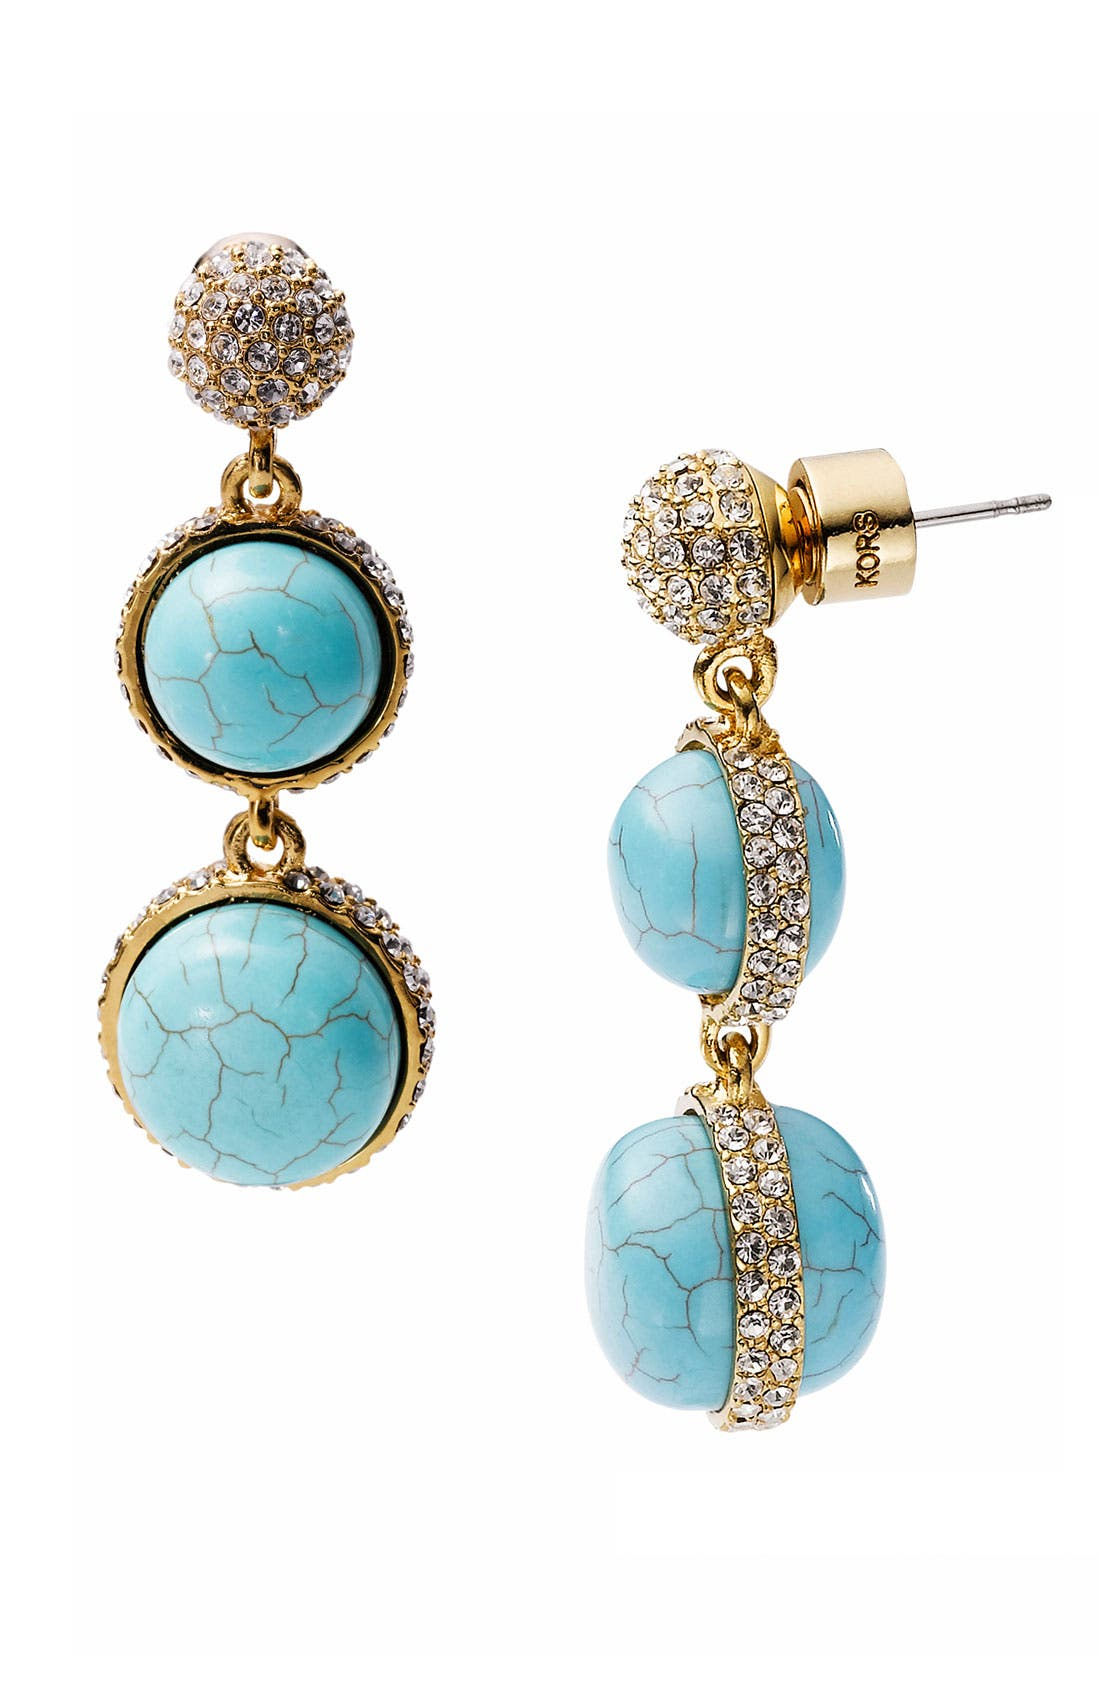 Main Image - Michael Kors 'Sleek Exotics' Double Drop Slice Earrings